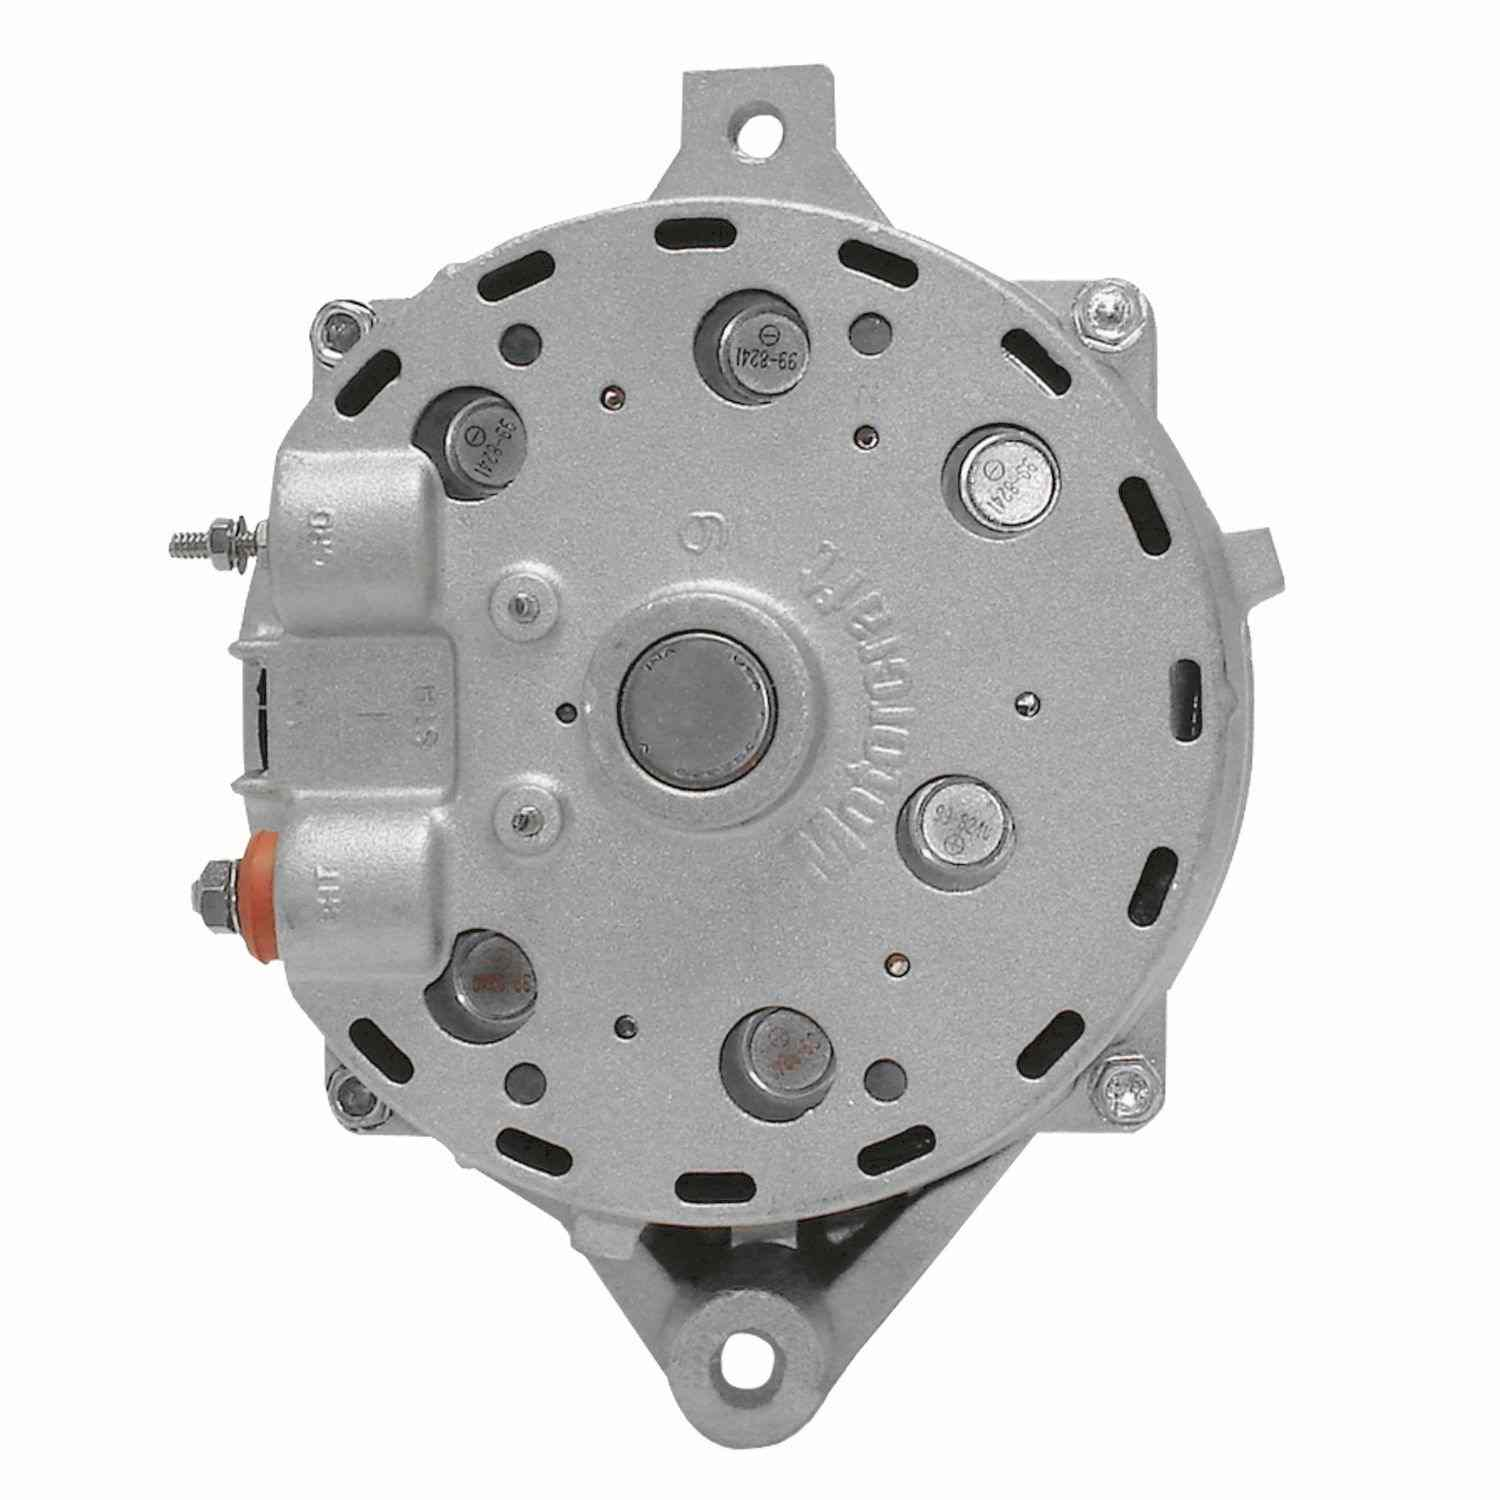 ACDELCO PROFESSIONAL - Reman Alternator - DCC 334-1999